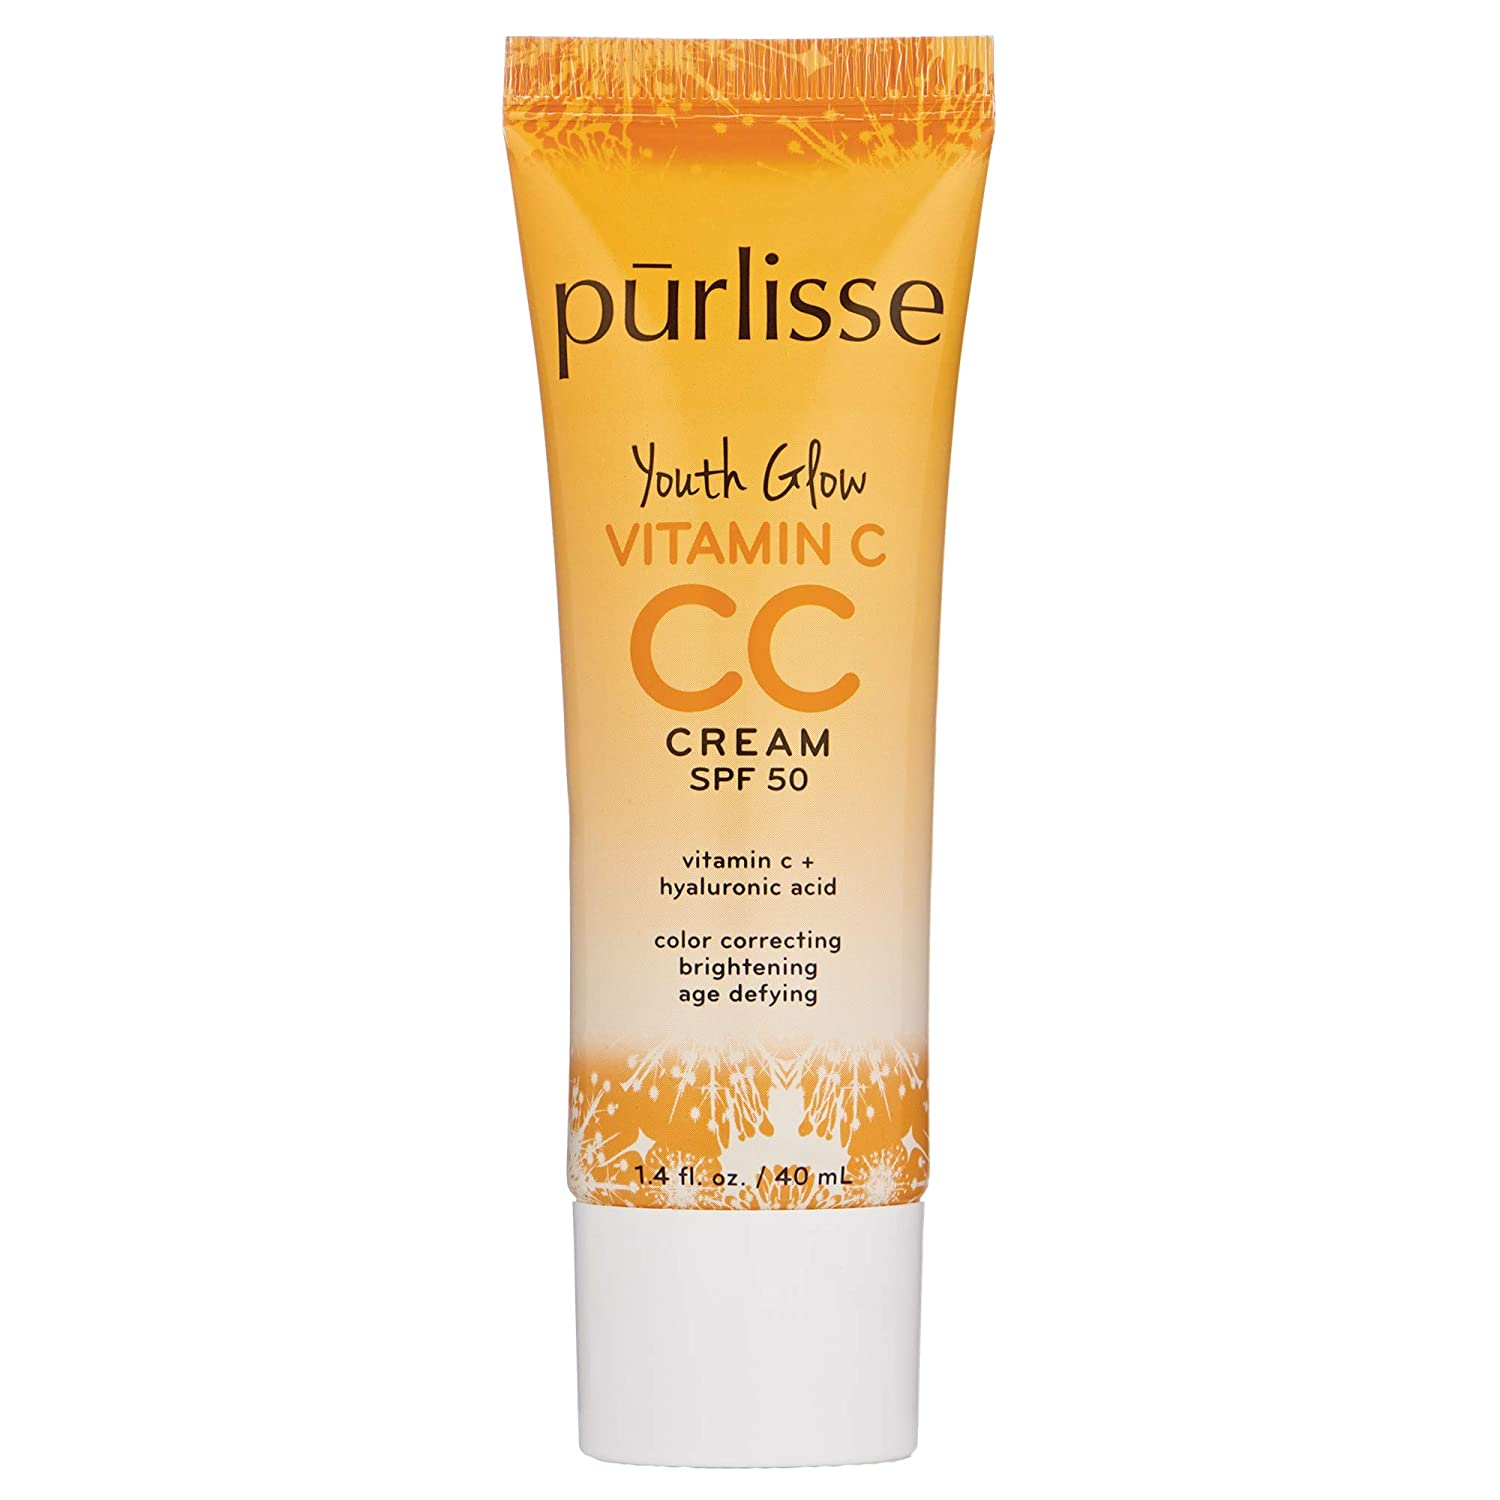 Purlisse Youth Glow CC Cream